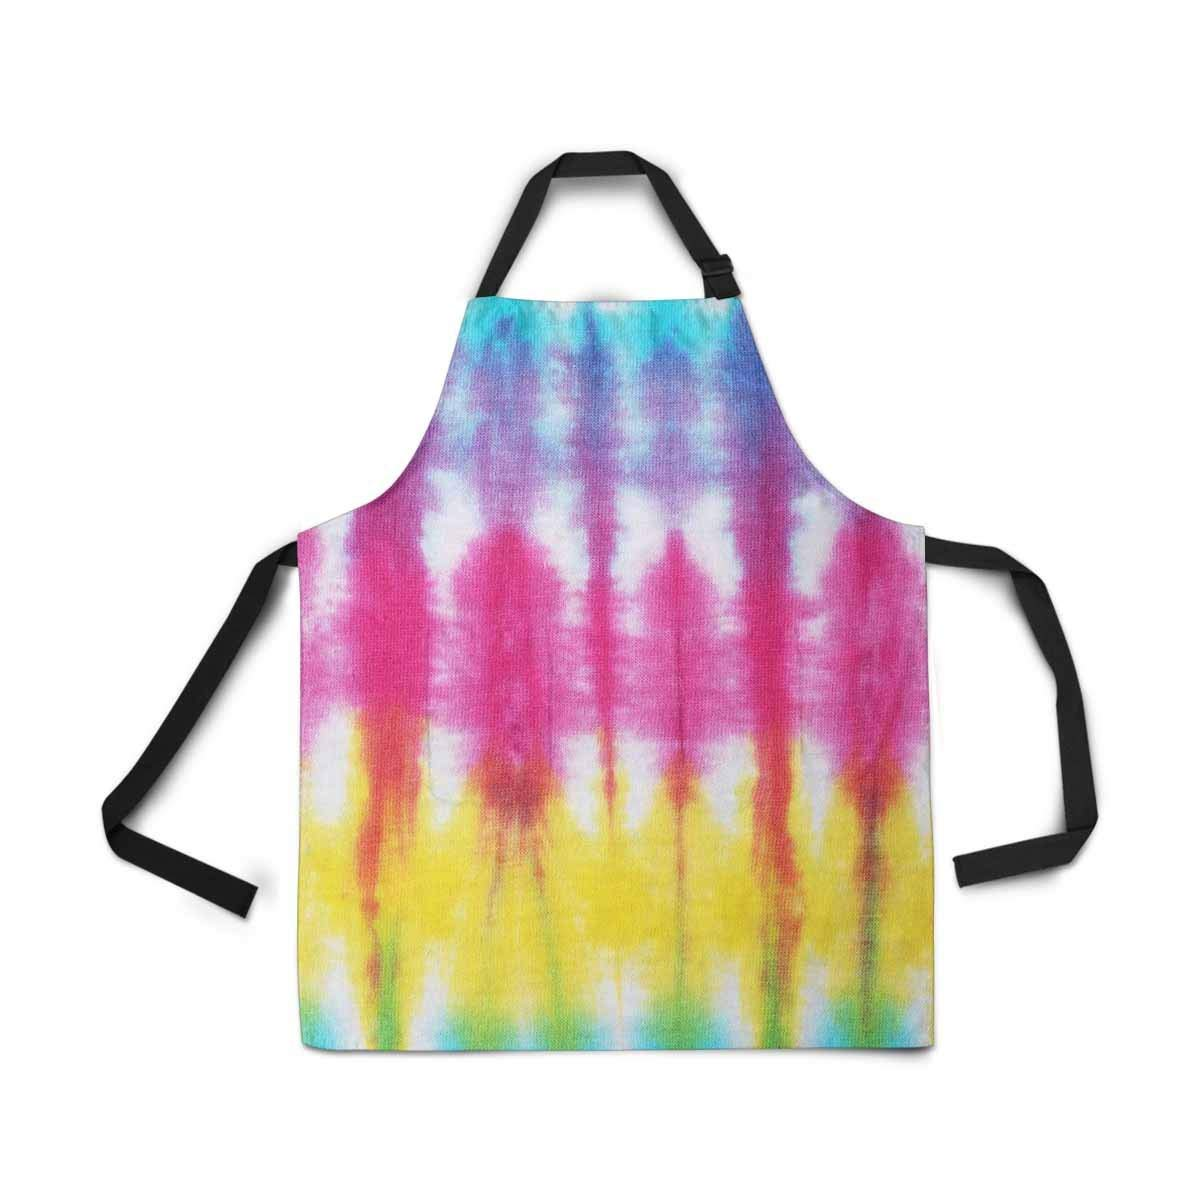 InterestPrint Colorful Tie Dye Apron Kitchen Cook for Women Men Girls Chef with Pockets, Tie Dyed Funny Adjustable Bib Baking Paint Cooking Apron Dress